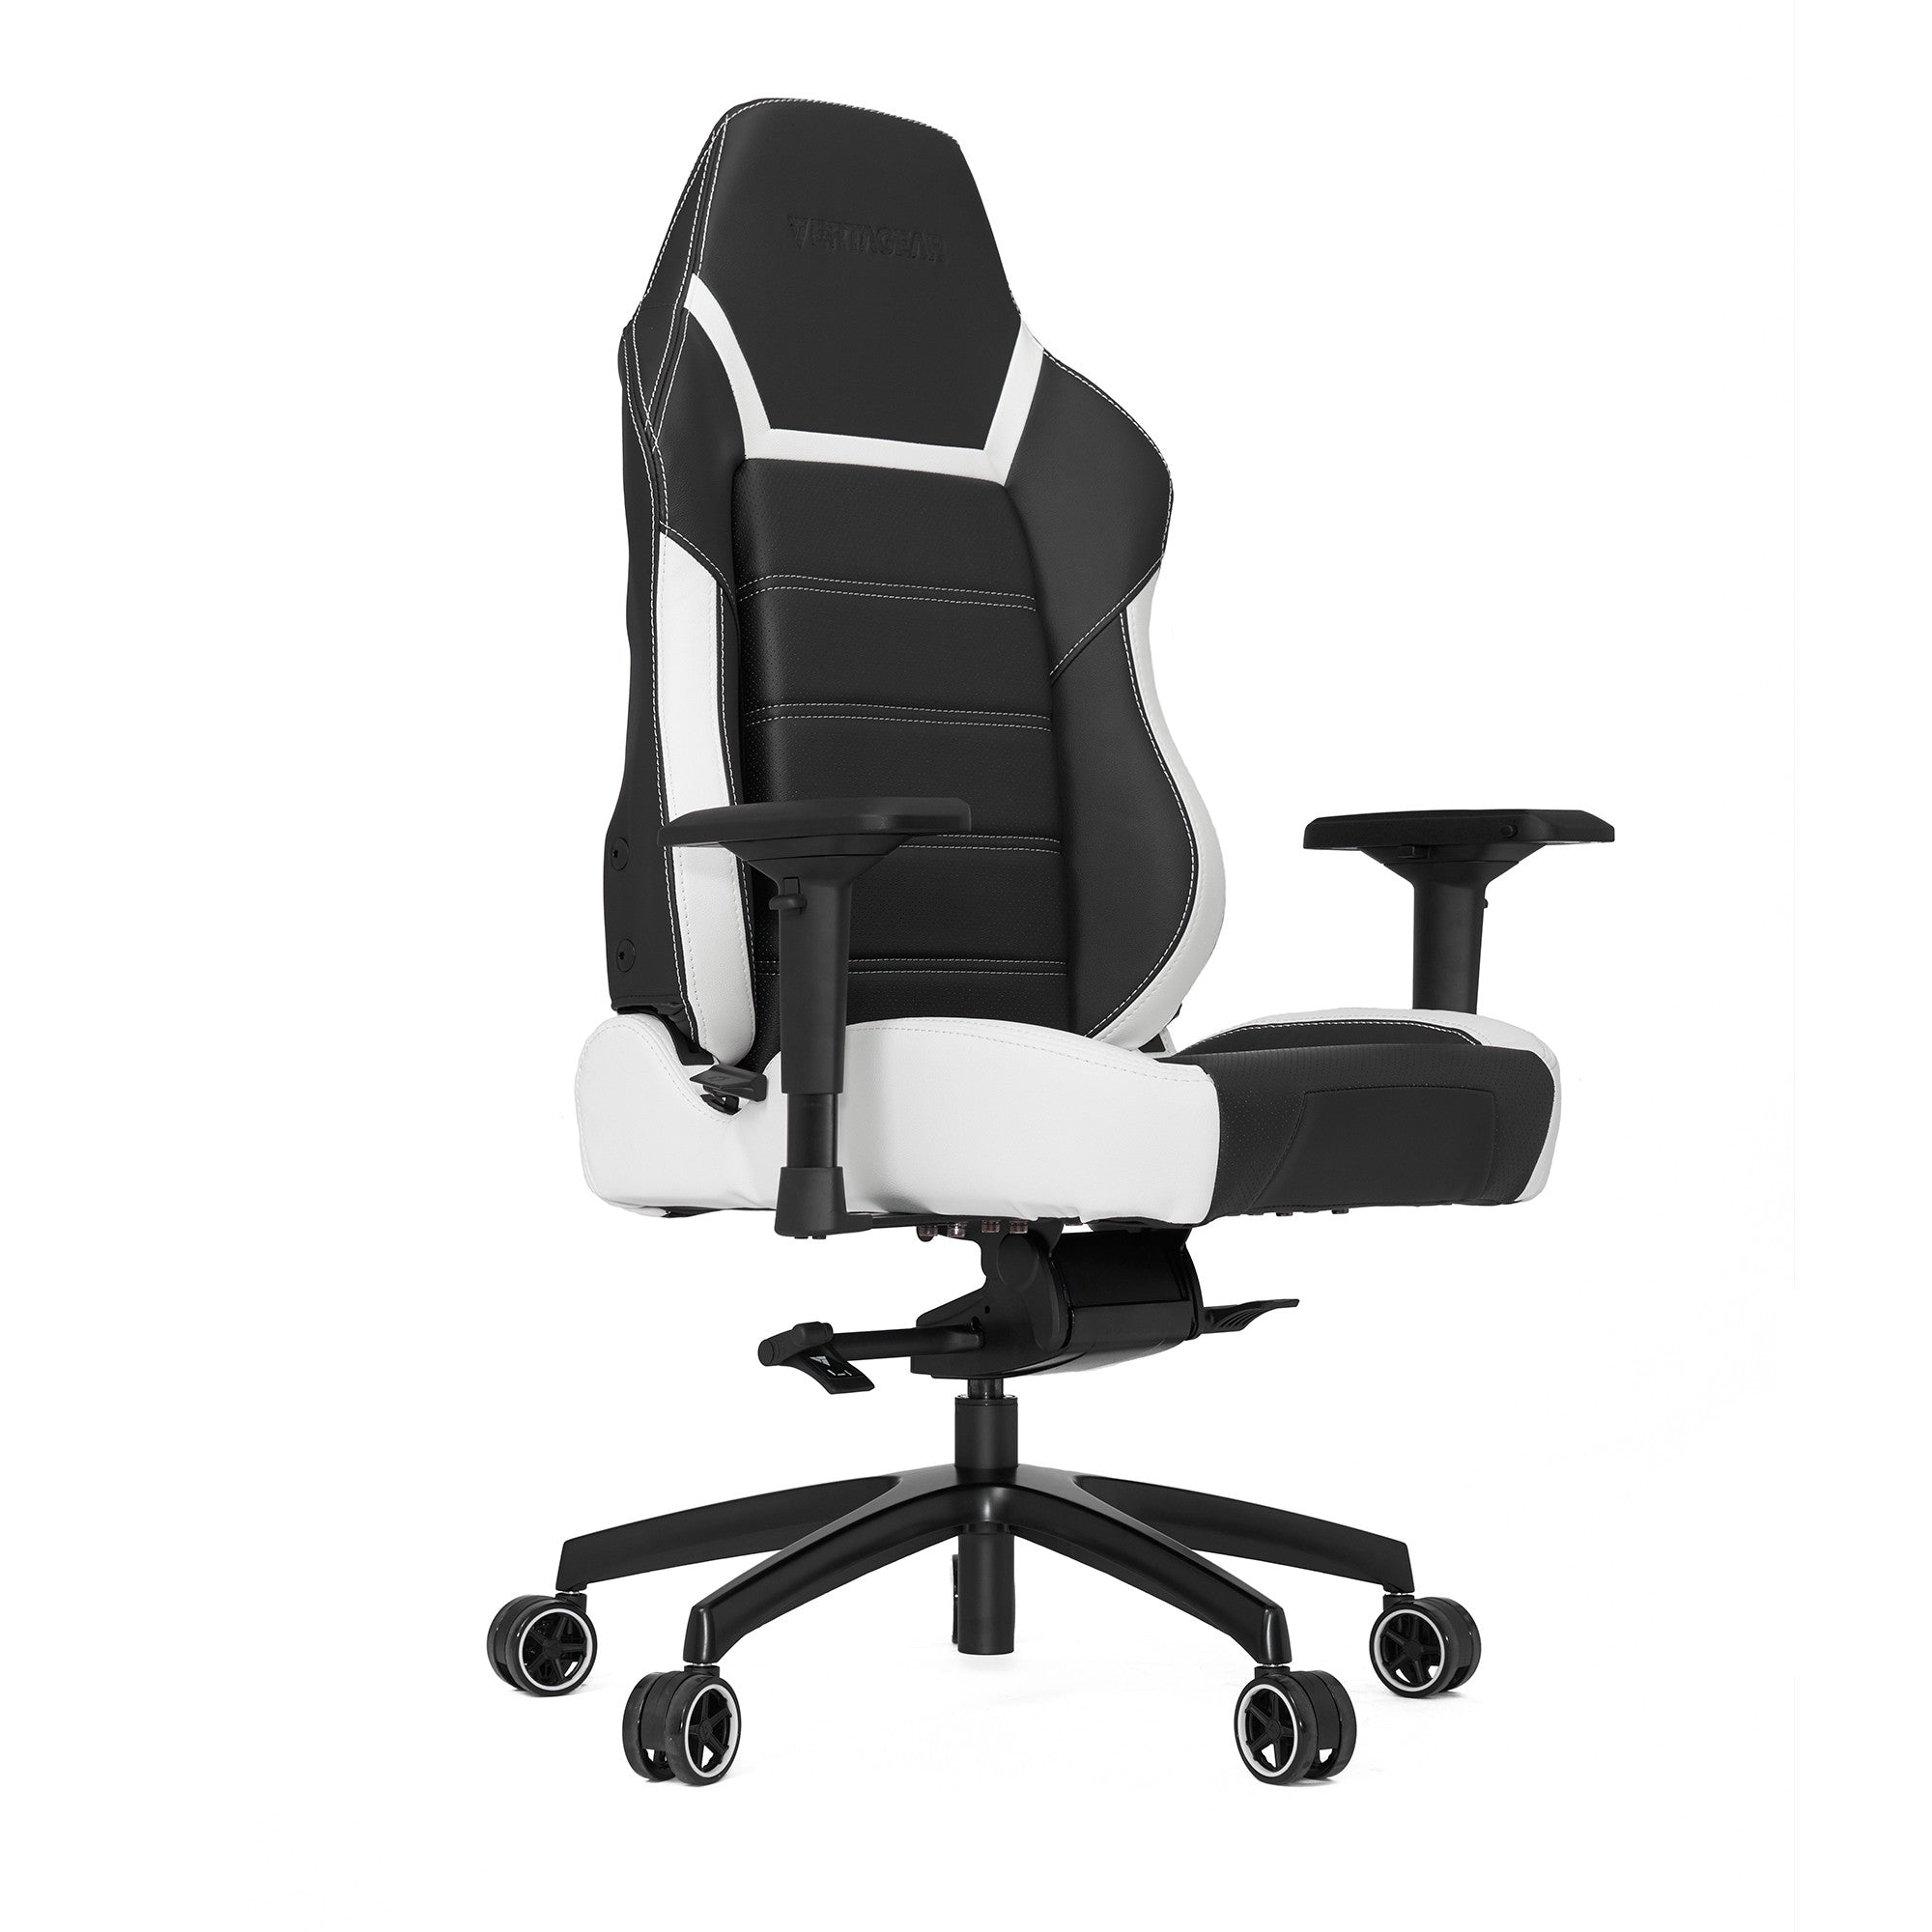 sona office supermarket index task seating ergonomic design cpath chair boss